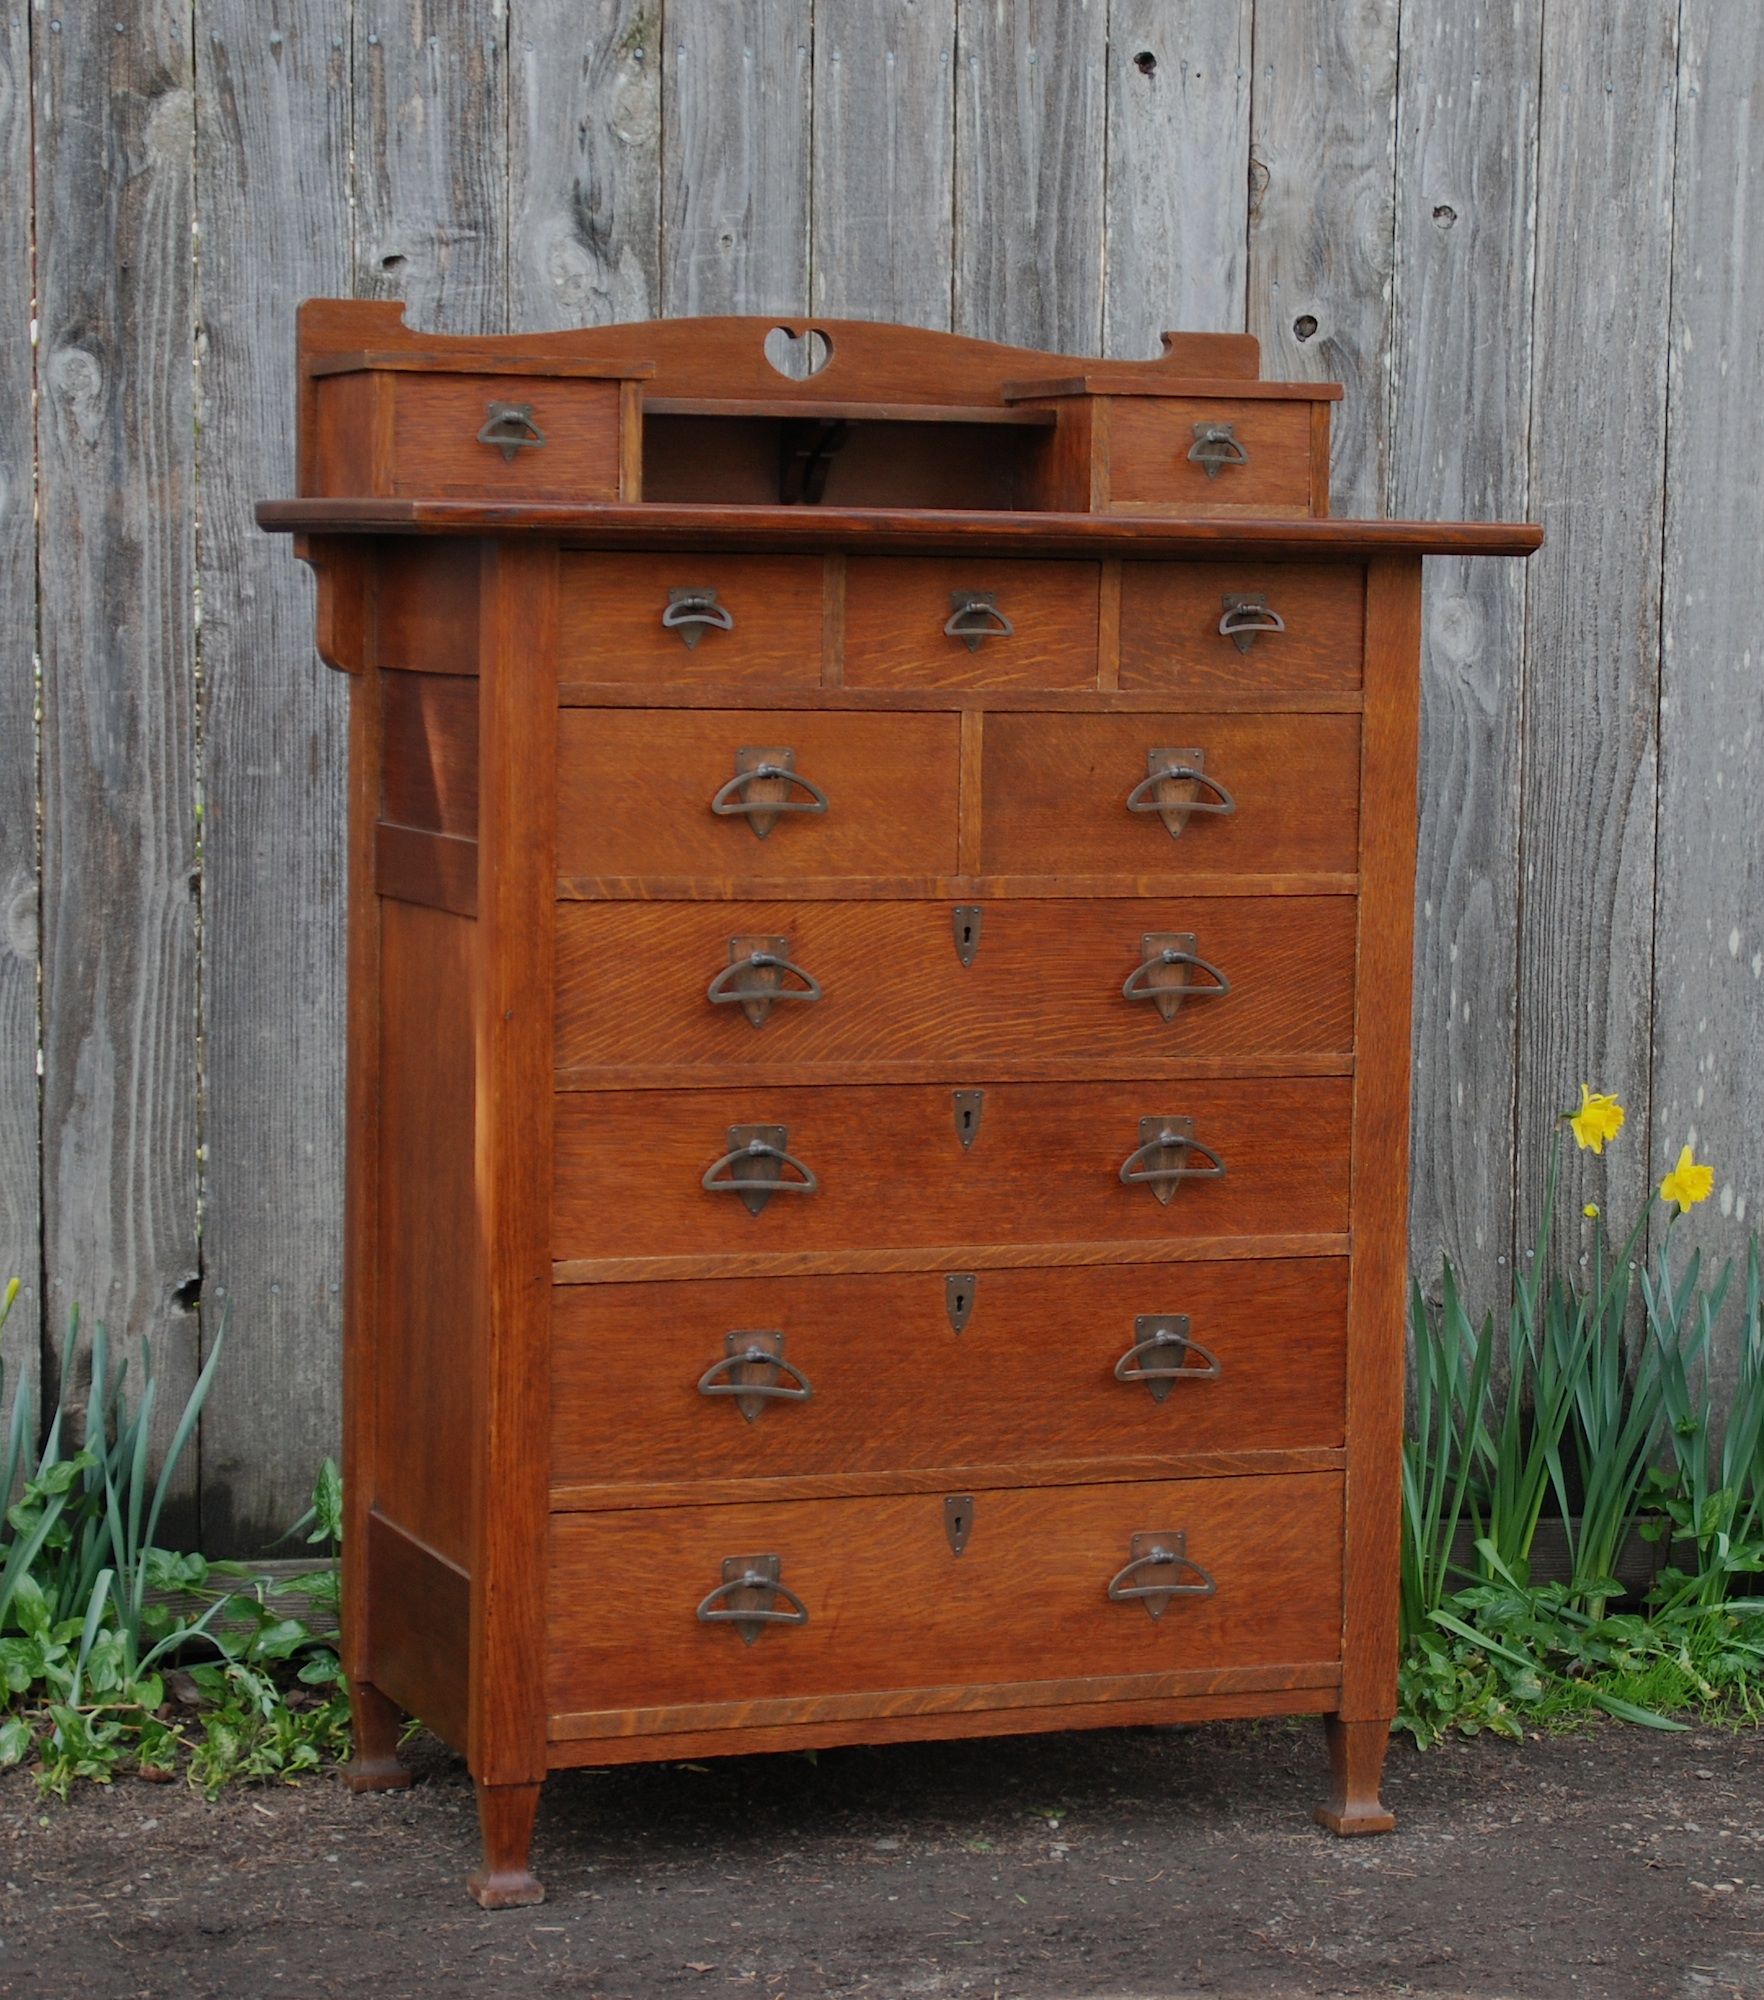 Voorhees craftsman mission oak furniture unique arts and for Dresser design